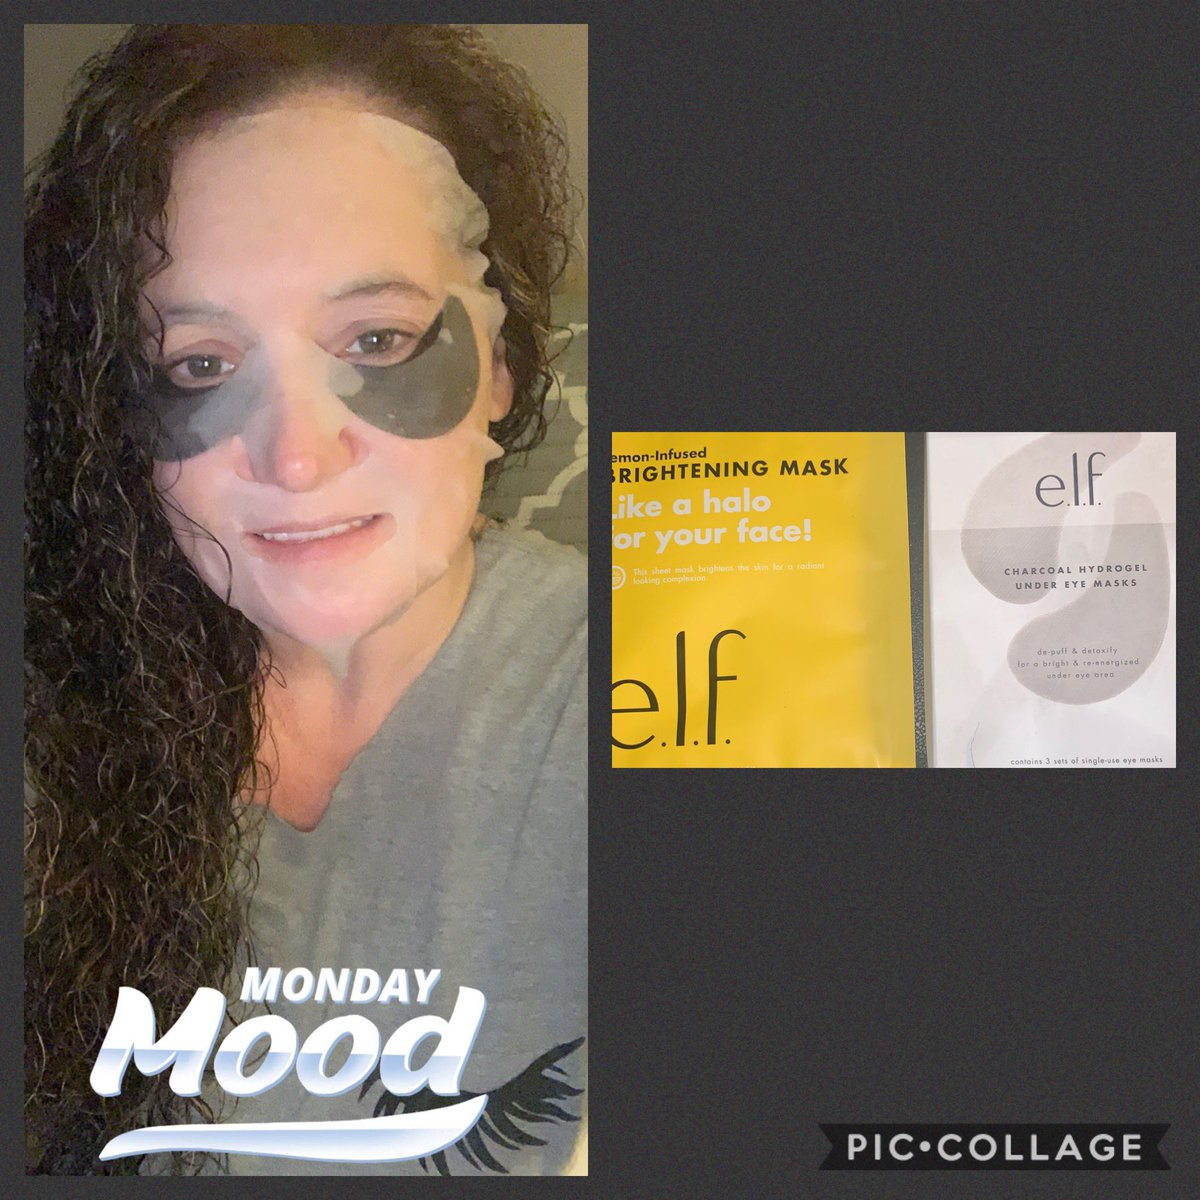 Good Morning My Beauty's💕💕 I started my day off with this  #Elf #LemonInfused #Brightening #FaceMask  & #Elf #Charcoal #Hydrogel #UnderEyeMasks Ill be going live shortly to do my 26th Look Of The 30 Day OF palettes So If y'all arnt busy pop in and hang out💕💕 https://t.co/TjKjnS7QMz